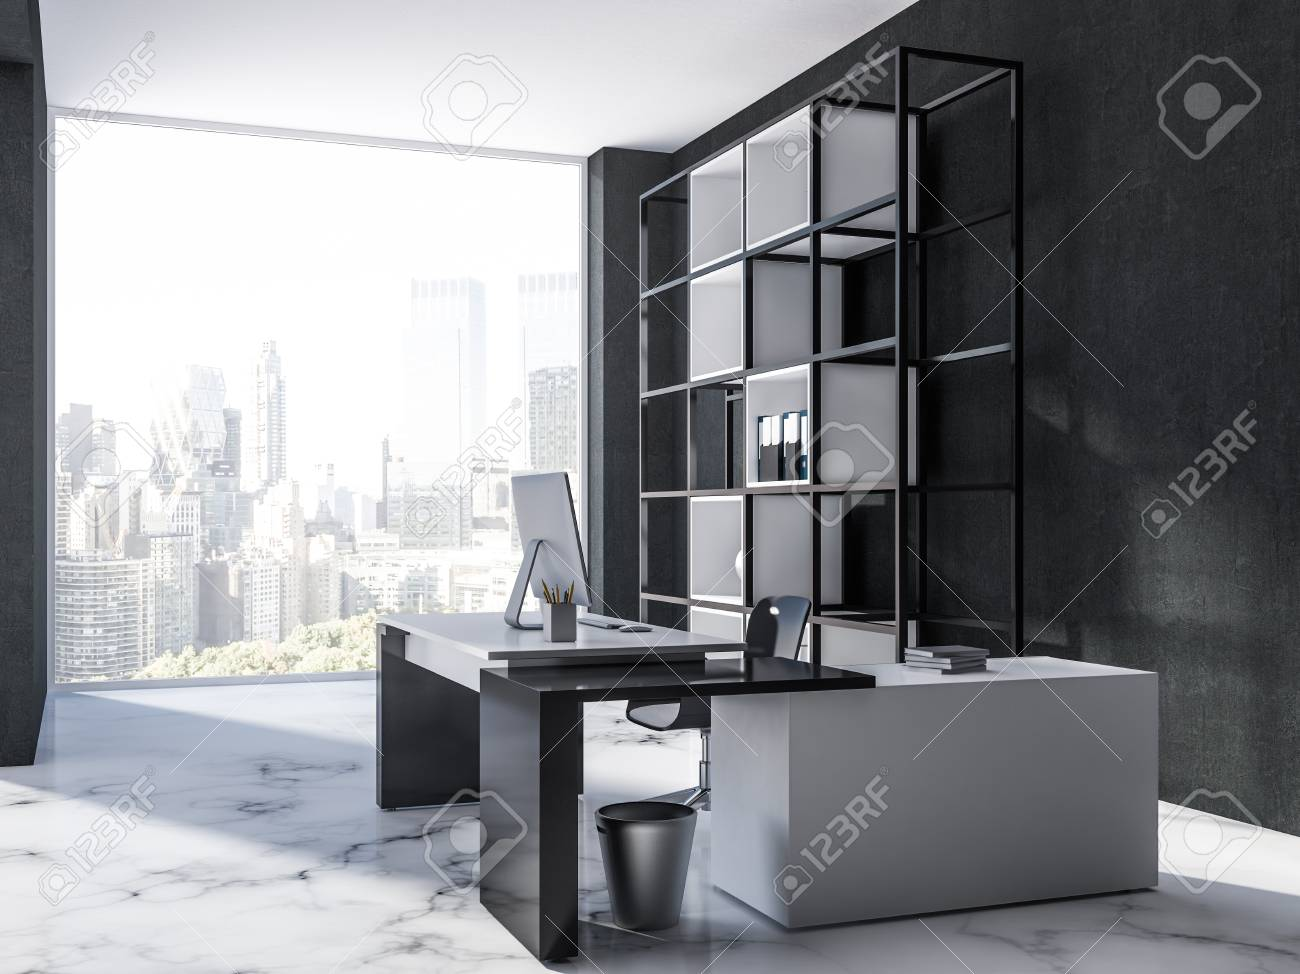 Side View Of Luxury Manager Office Interior With Black Walls Stock Photo Picture And Royalty Free Image Image 108522200